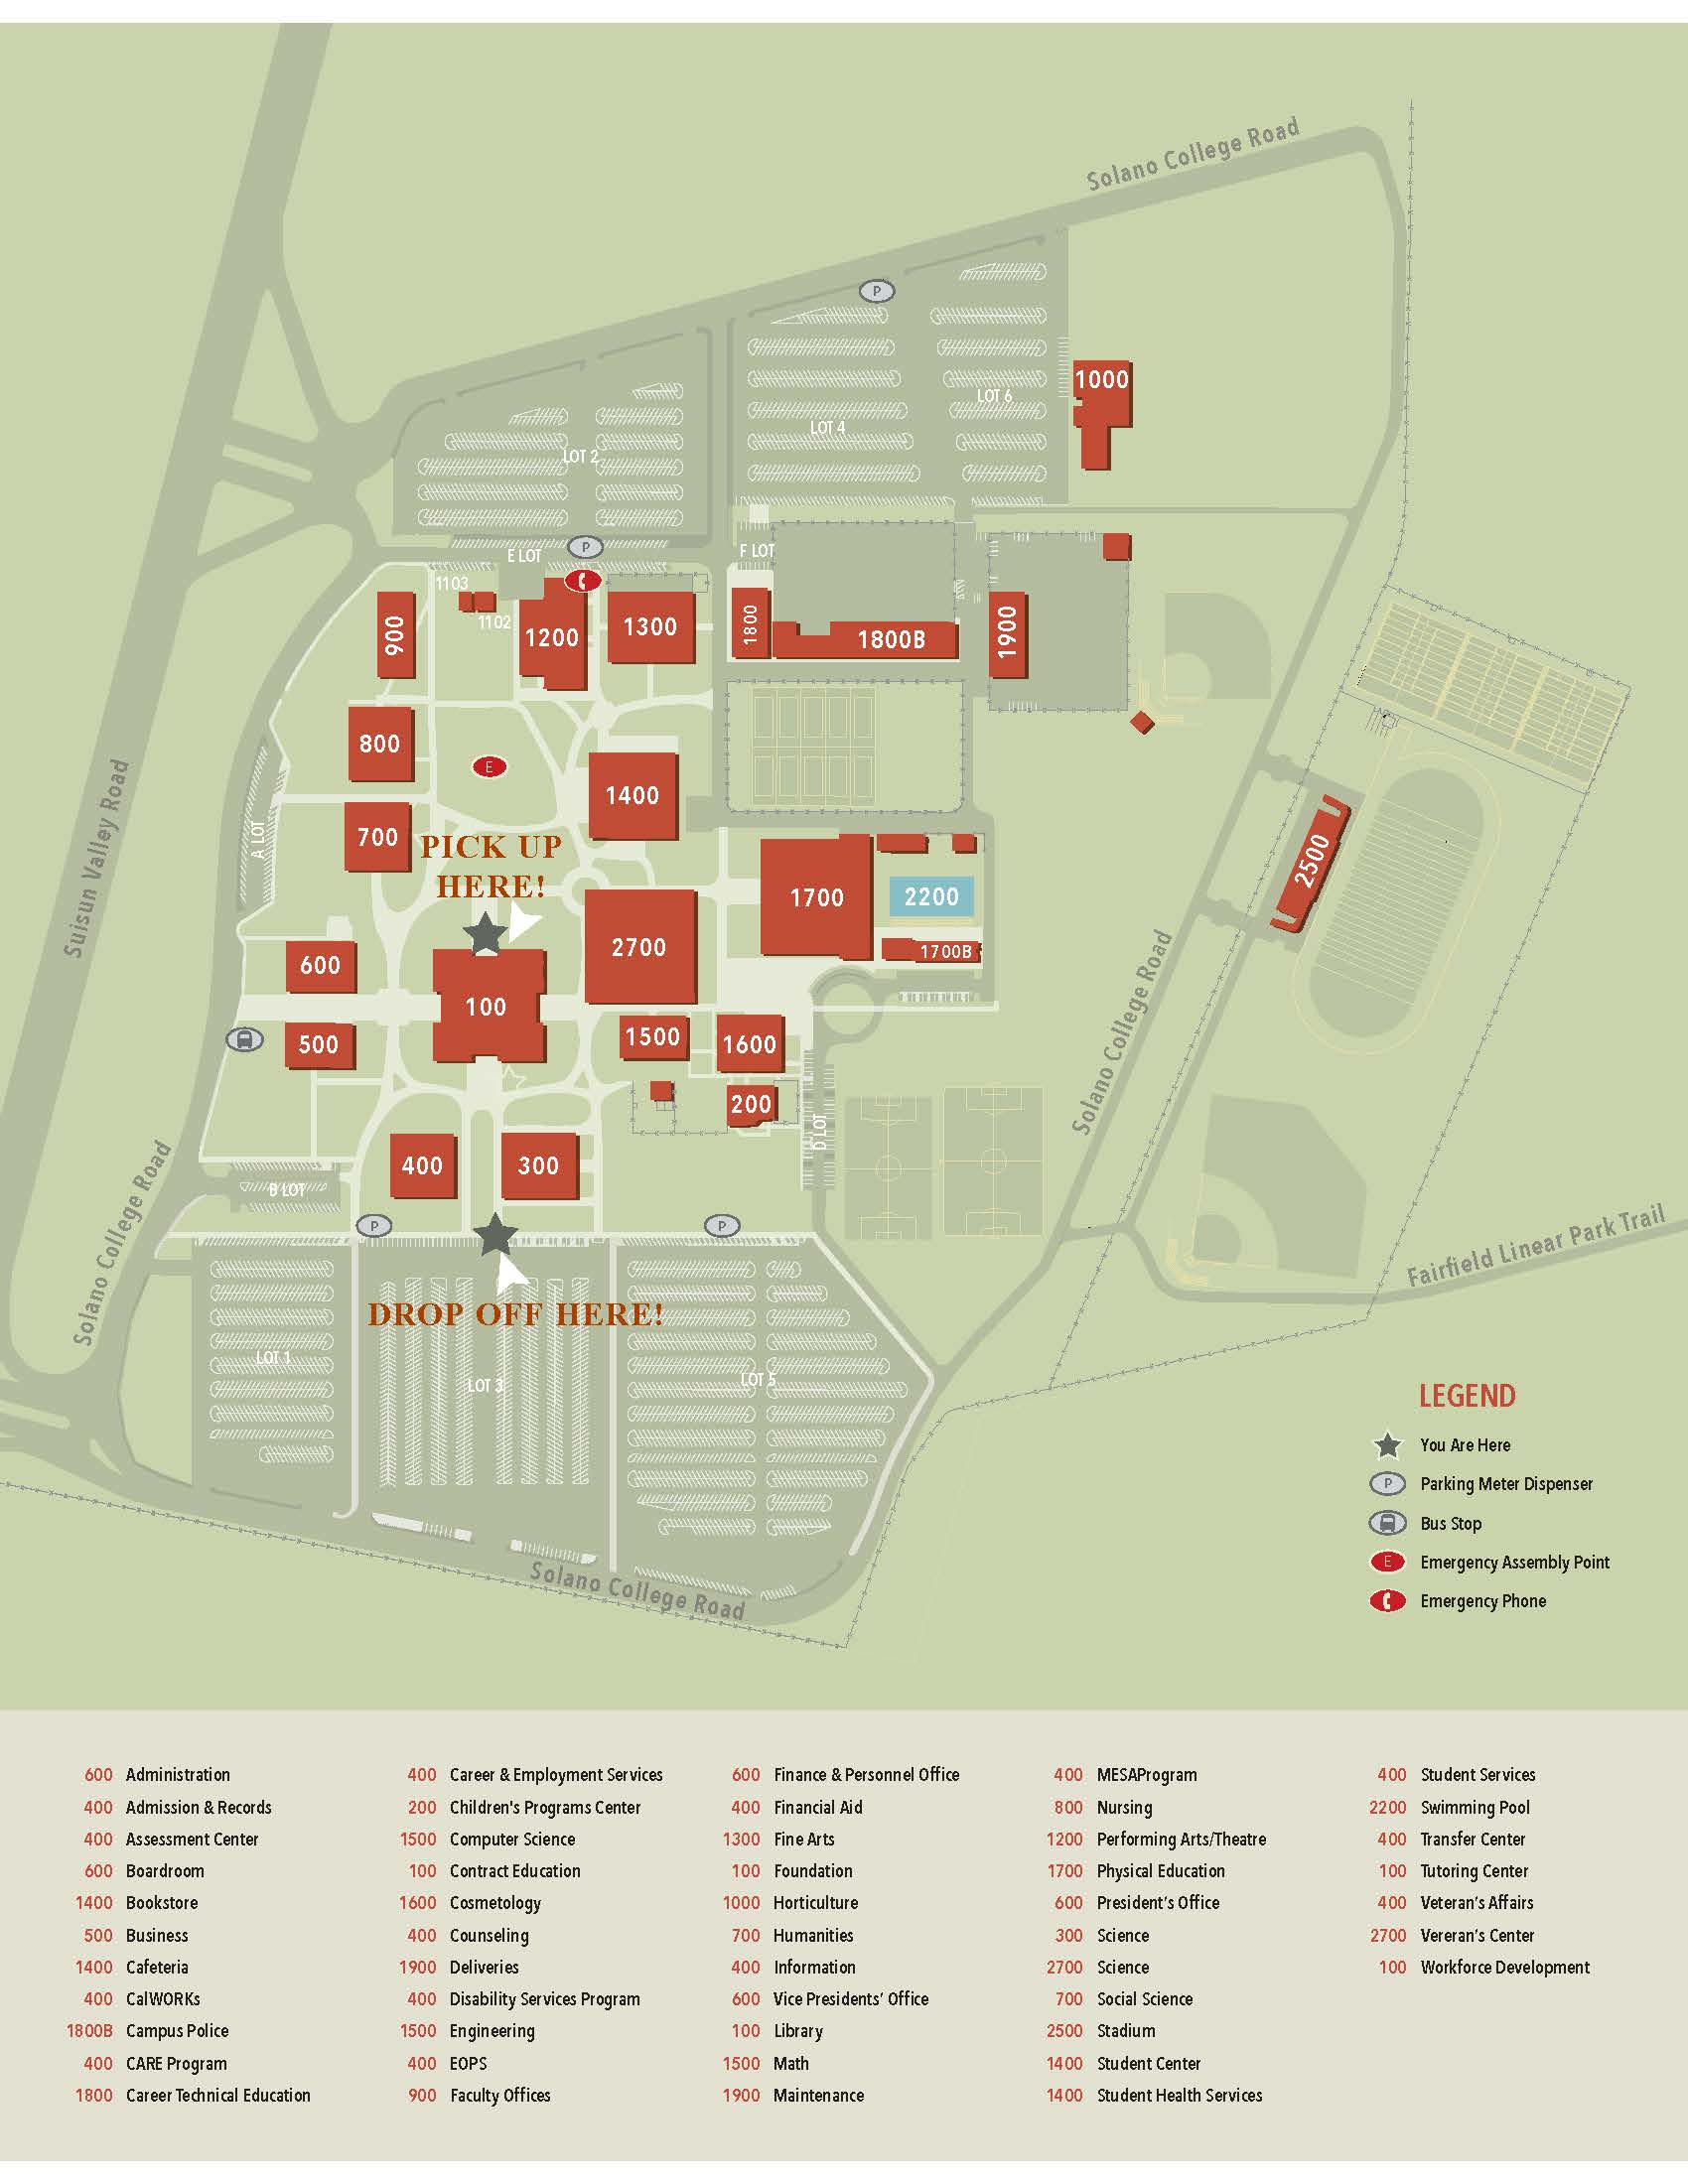 updated campus map with book drop location